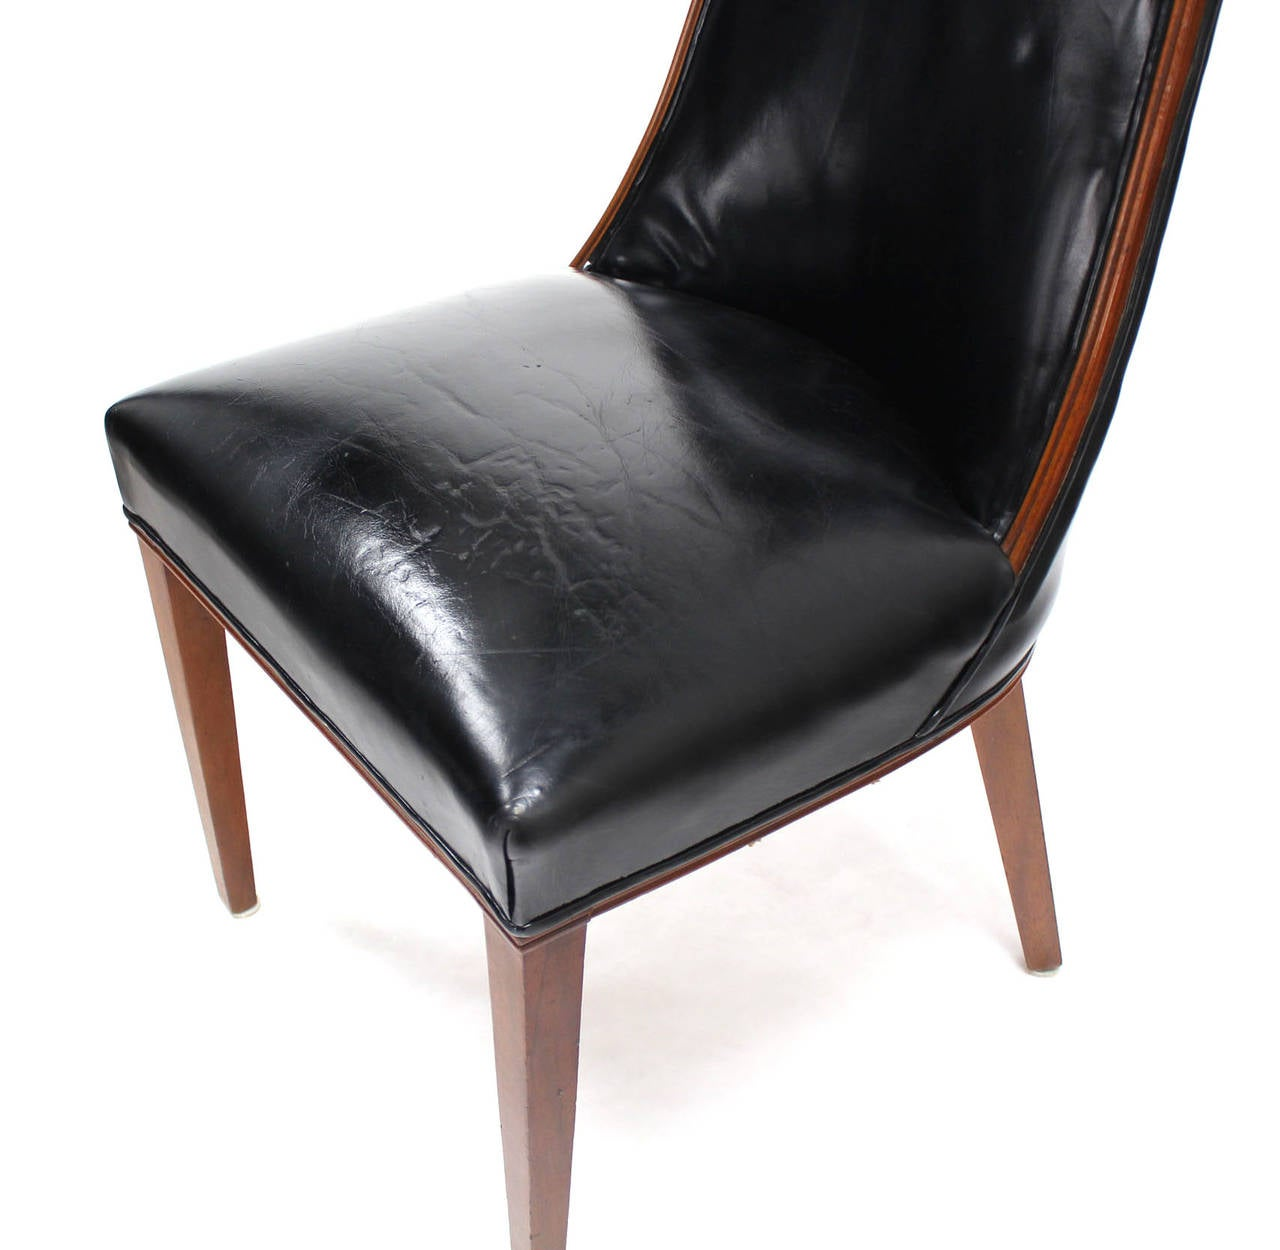 quality leather dining chairs sciatic nerve chair exercises set of six tall back high